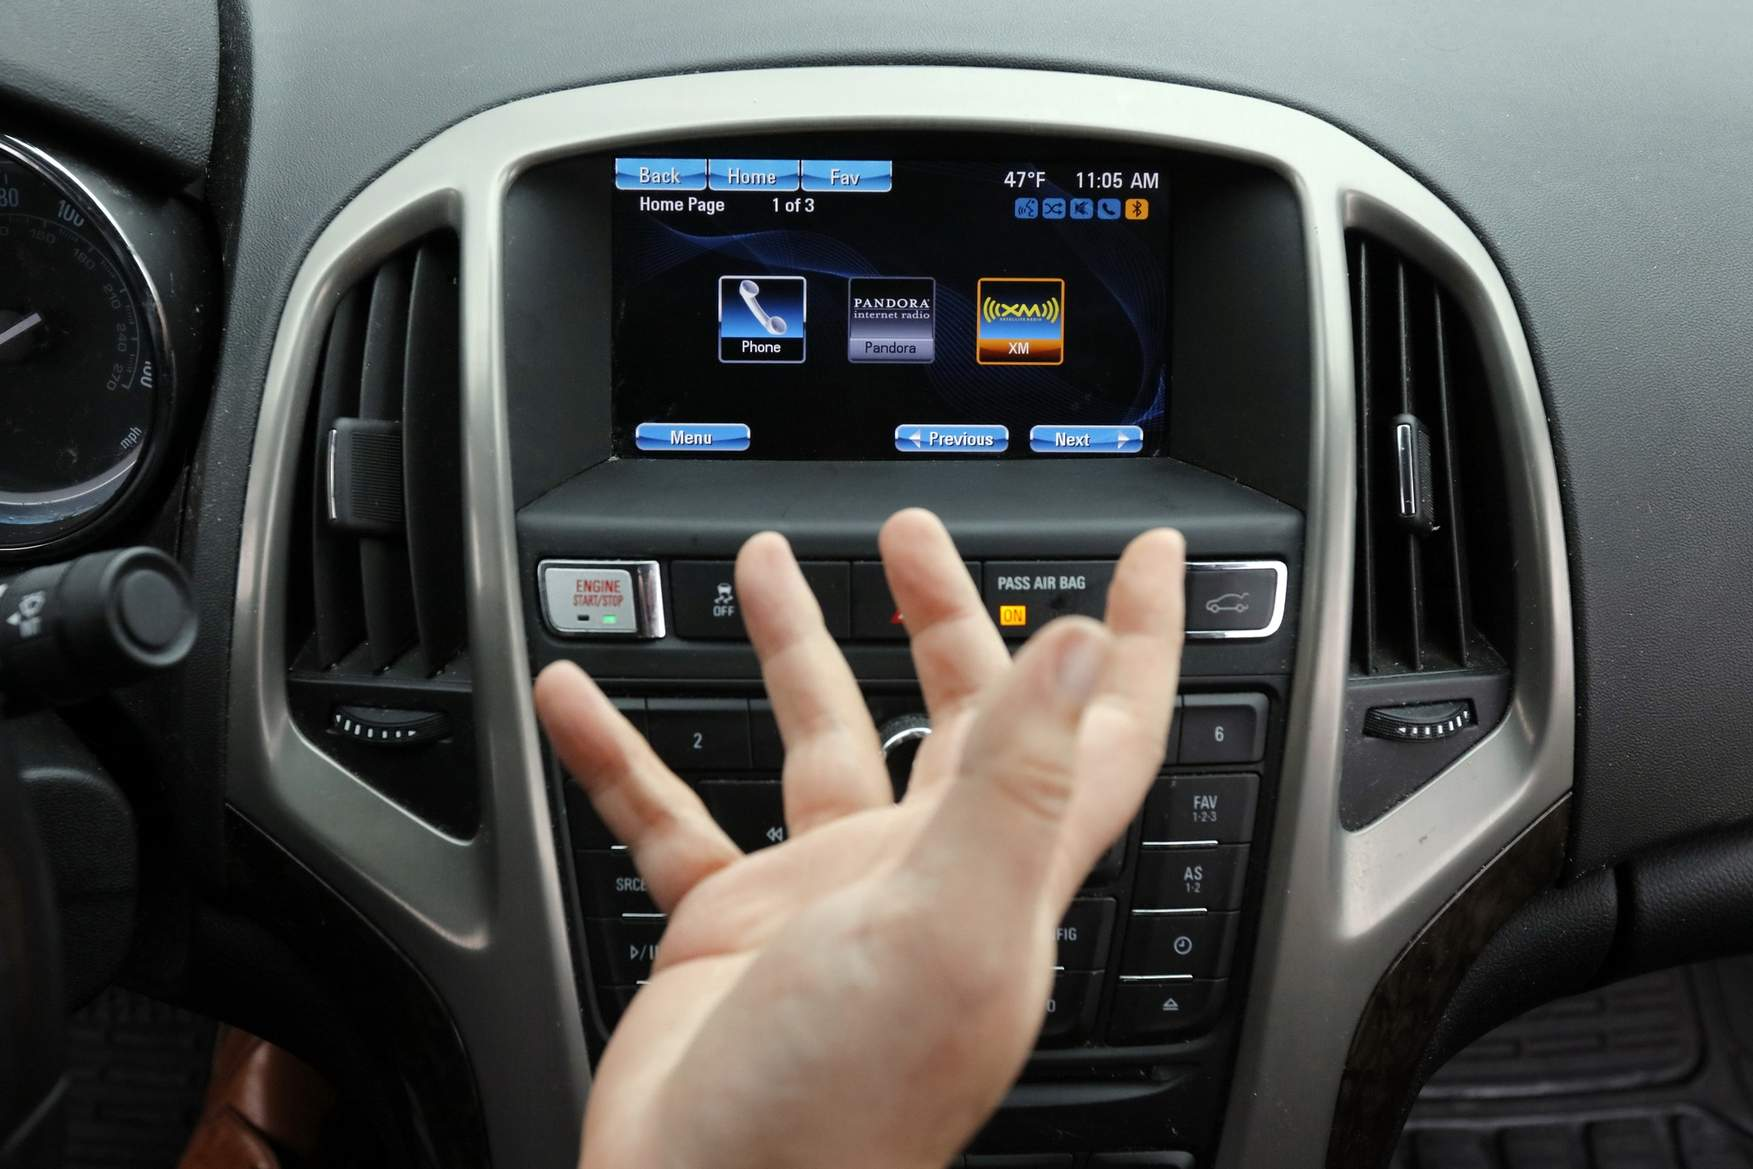 Drivers won't be able to use phones while driving